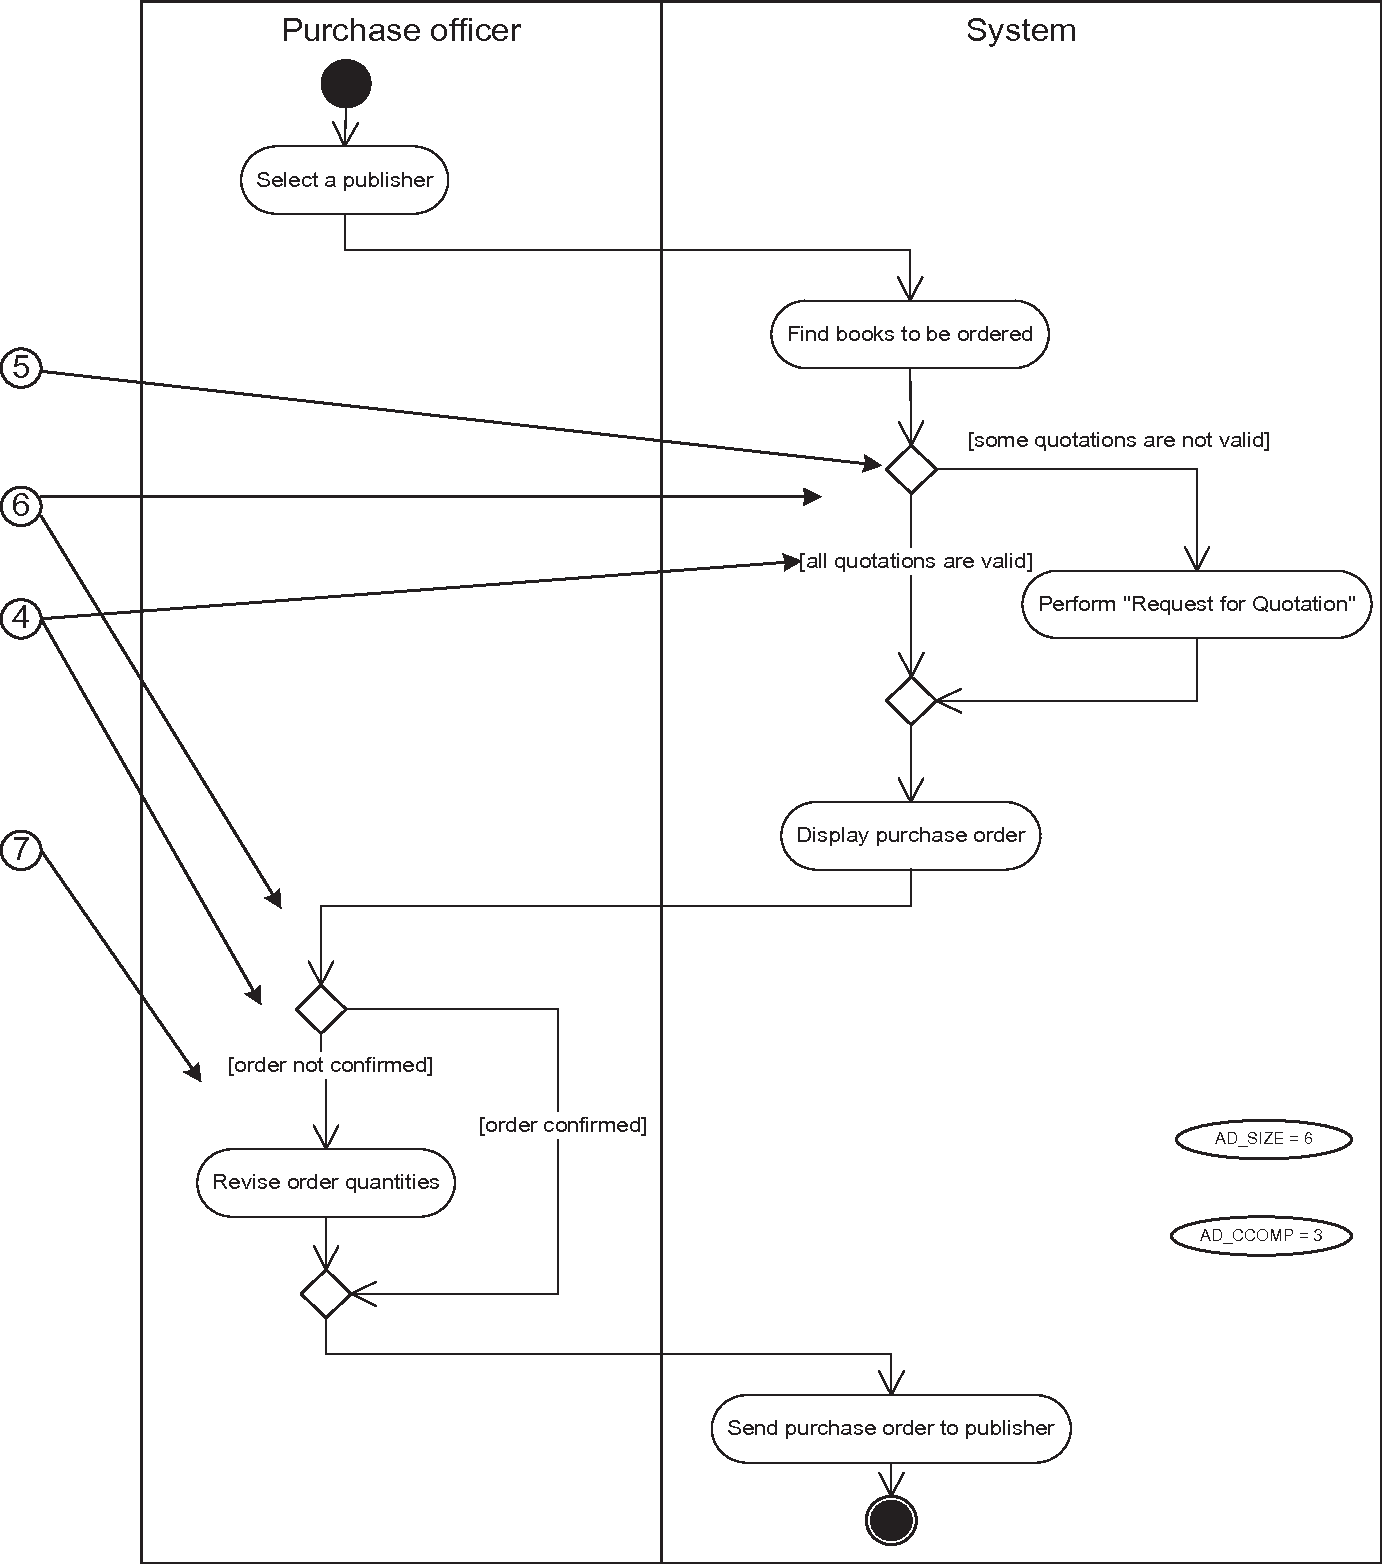 Benefits Of Supplementing Use Case Narratives With Activity Diagrams An Exploratory Study Semantic Scholar